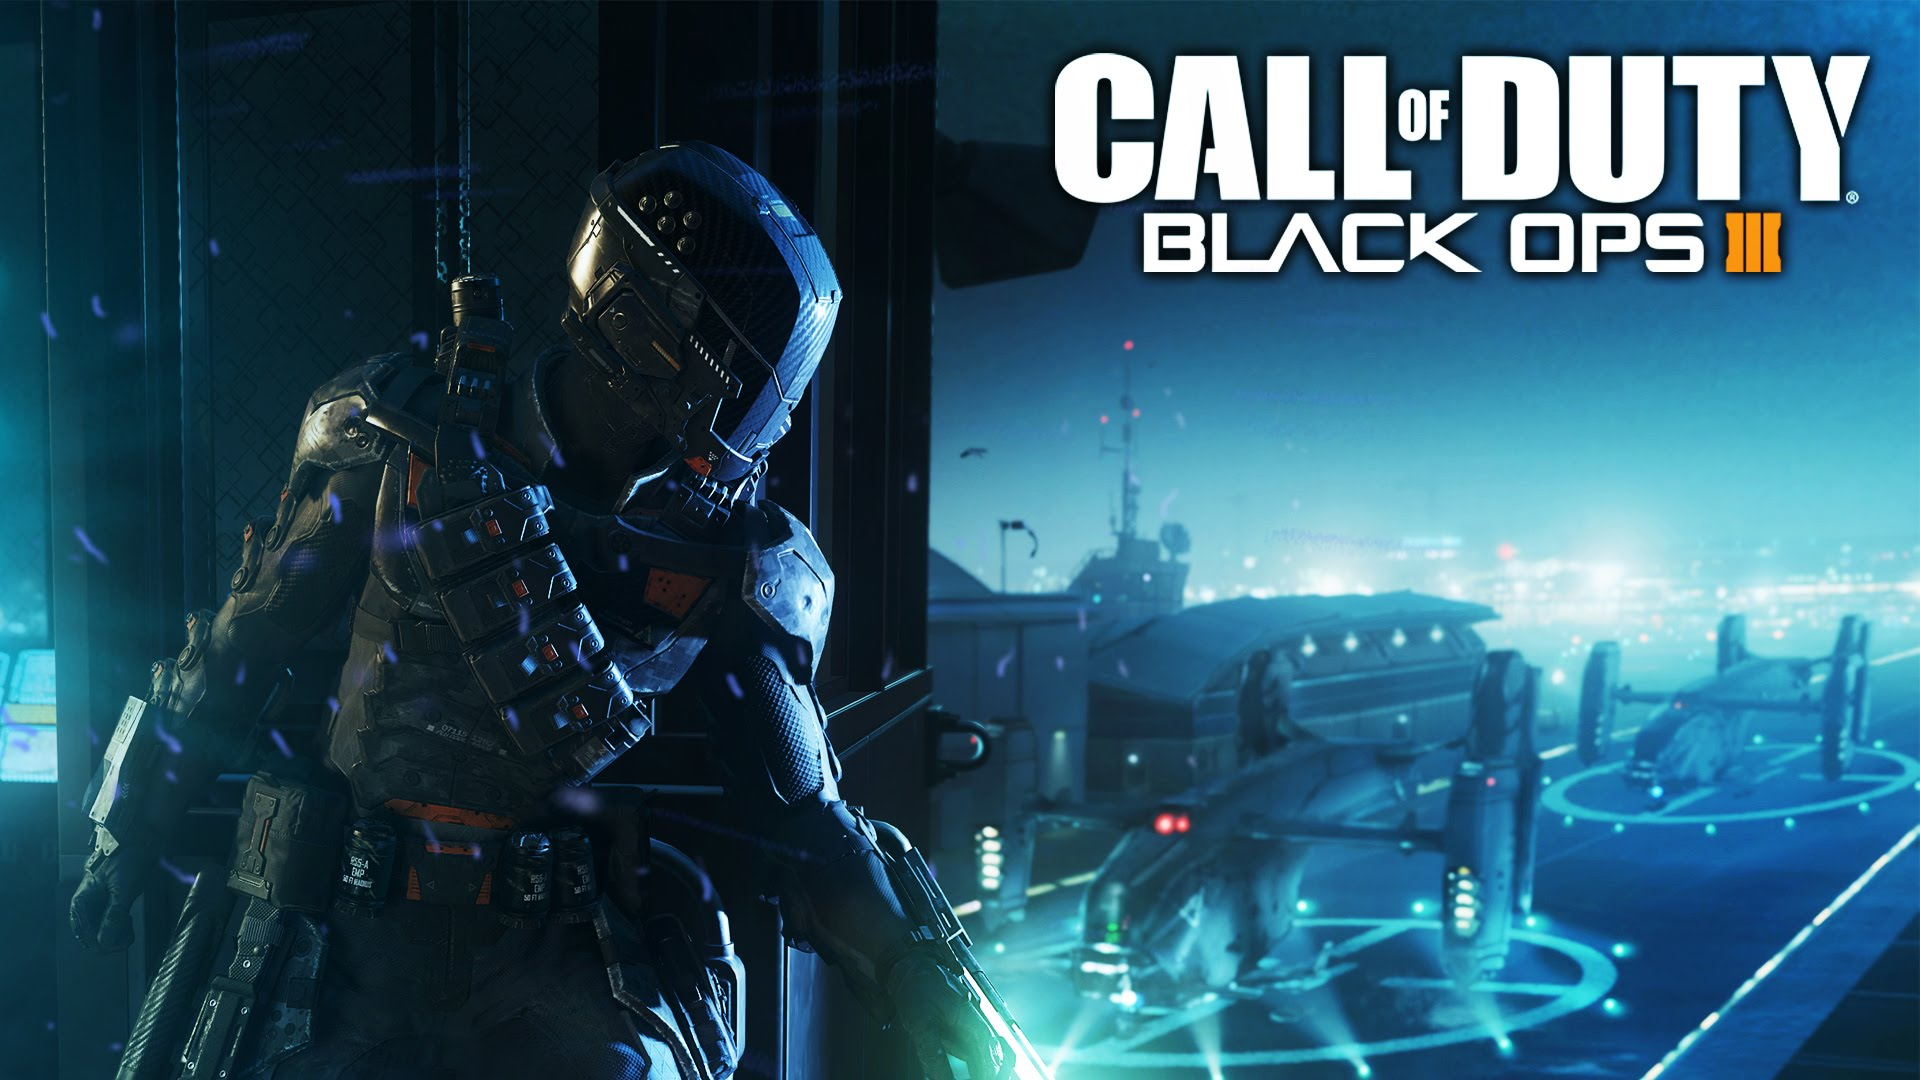 36 Call Of Duty Backgrounds Download Free Beautiful Hd: Most Beautiful Call Of Duty Black Ops III Wallpaper